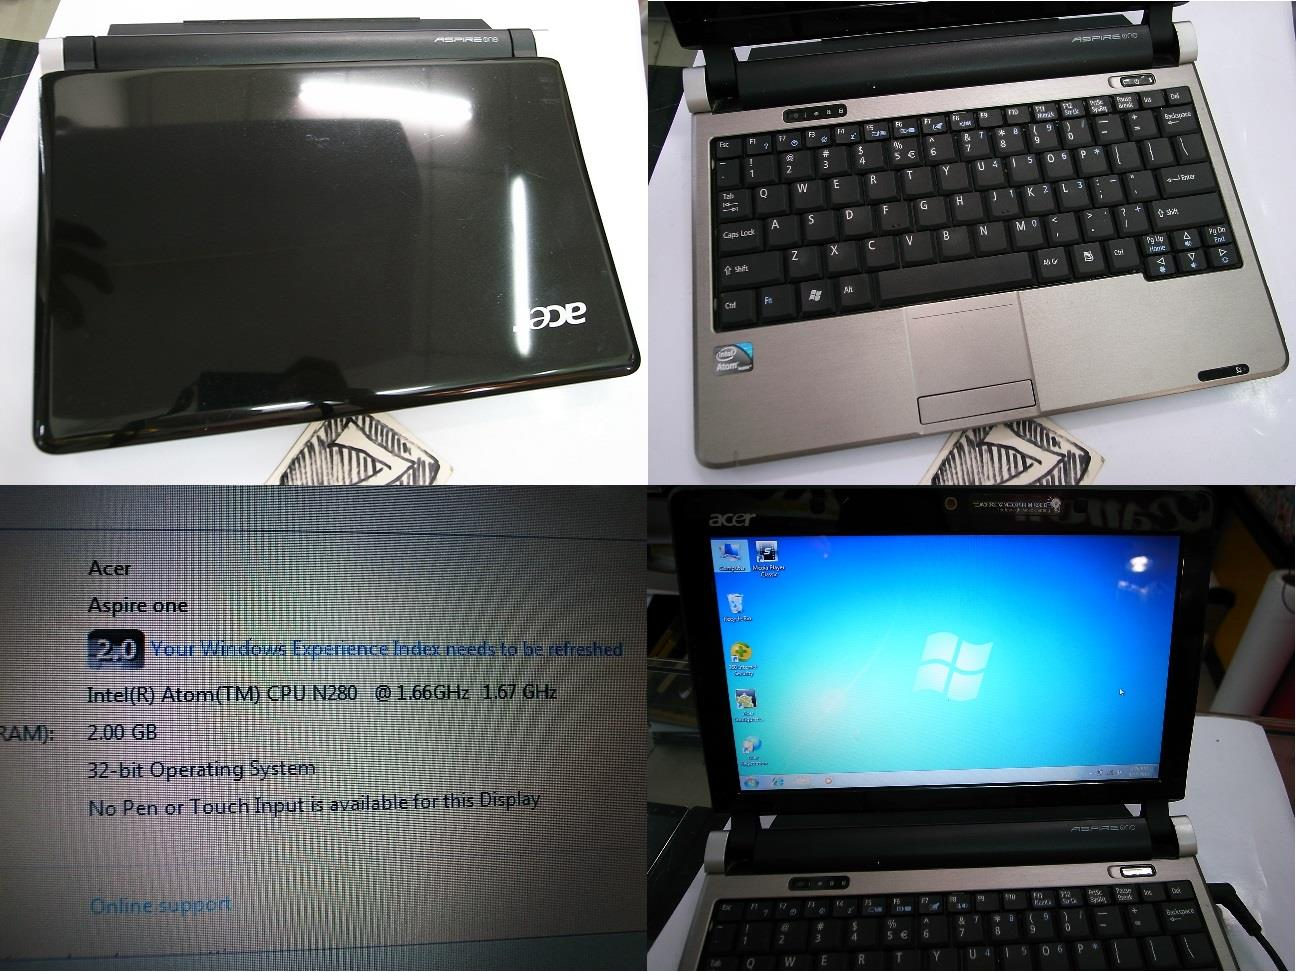 Acer Aspire One D250 10.1  NetBook NoteBook Rm570